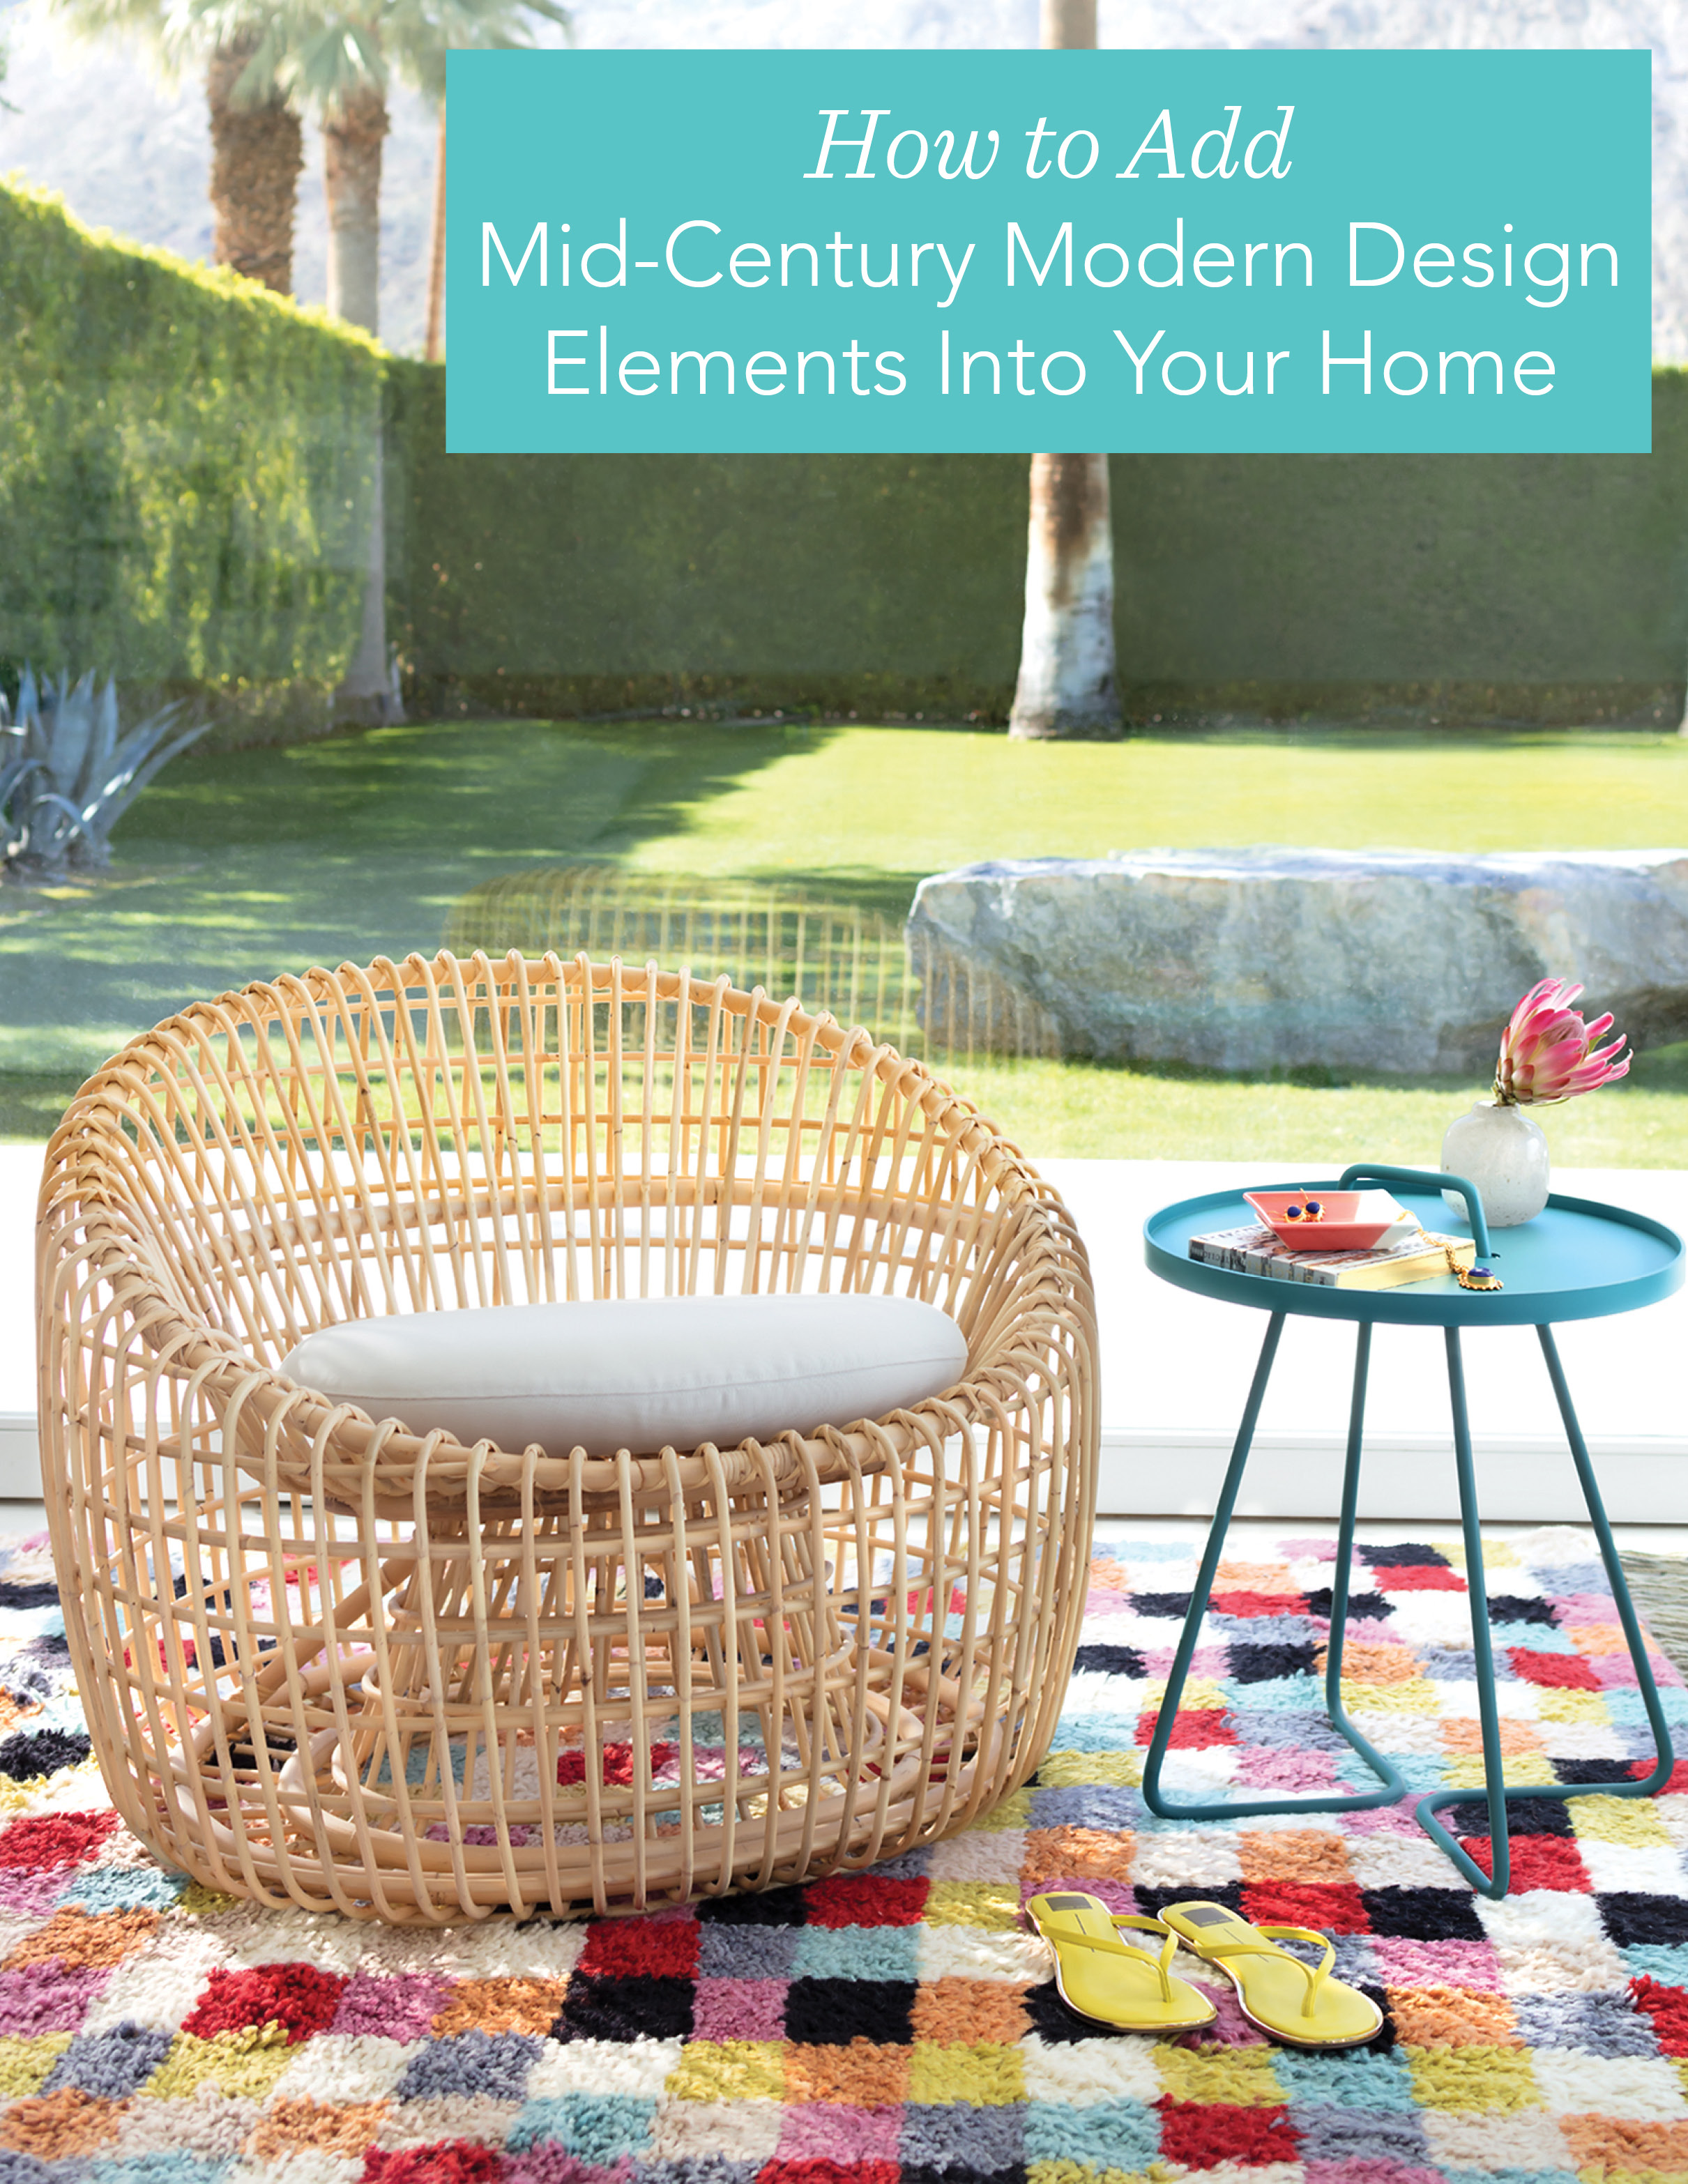 Get the Elements of a Mid-Century Modern Look | Annie Selke's Fresh American Style